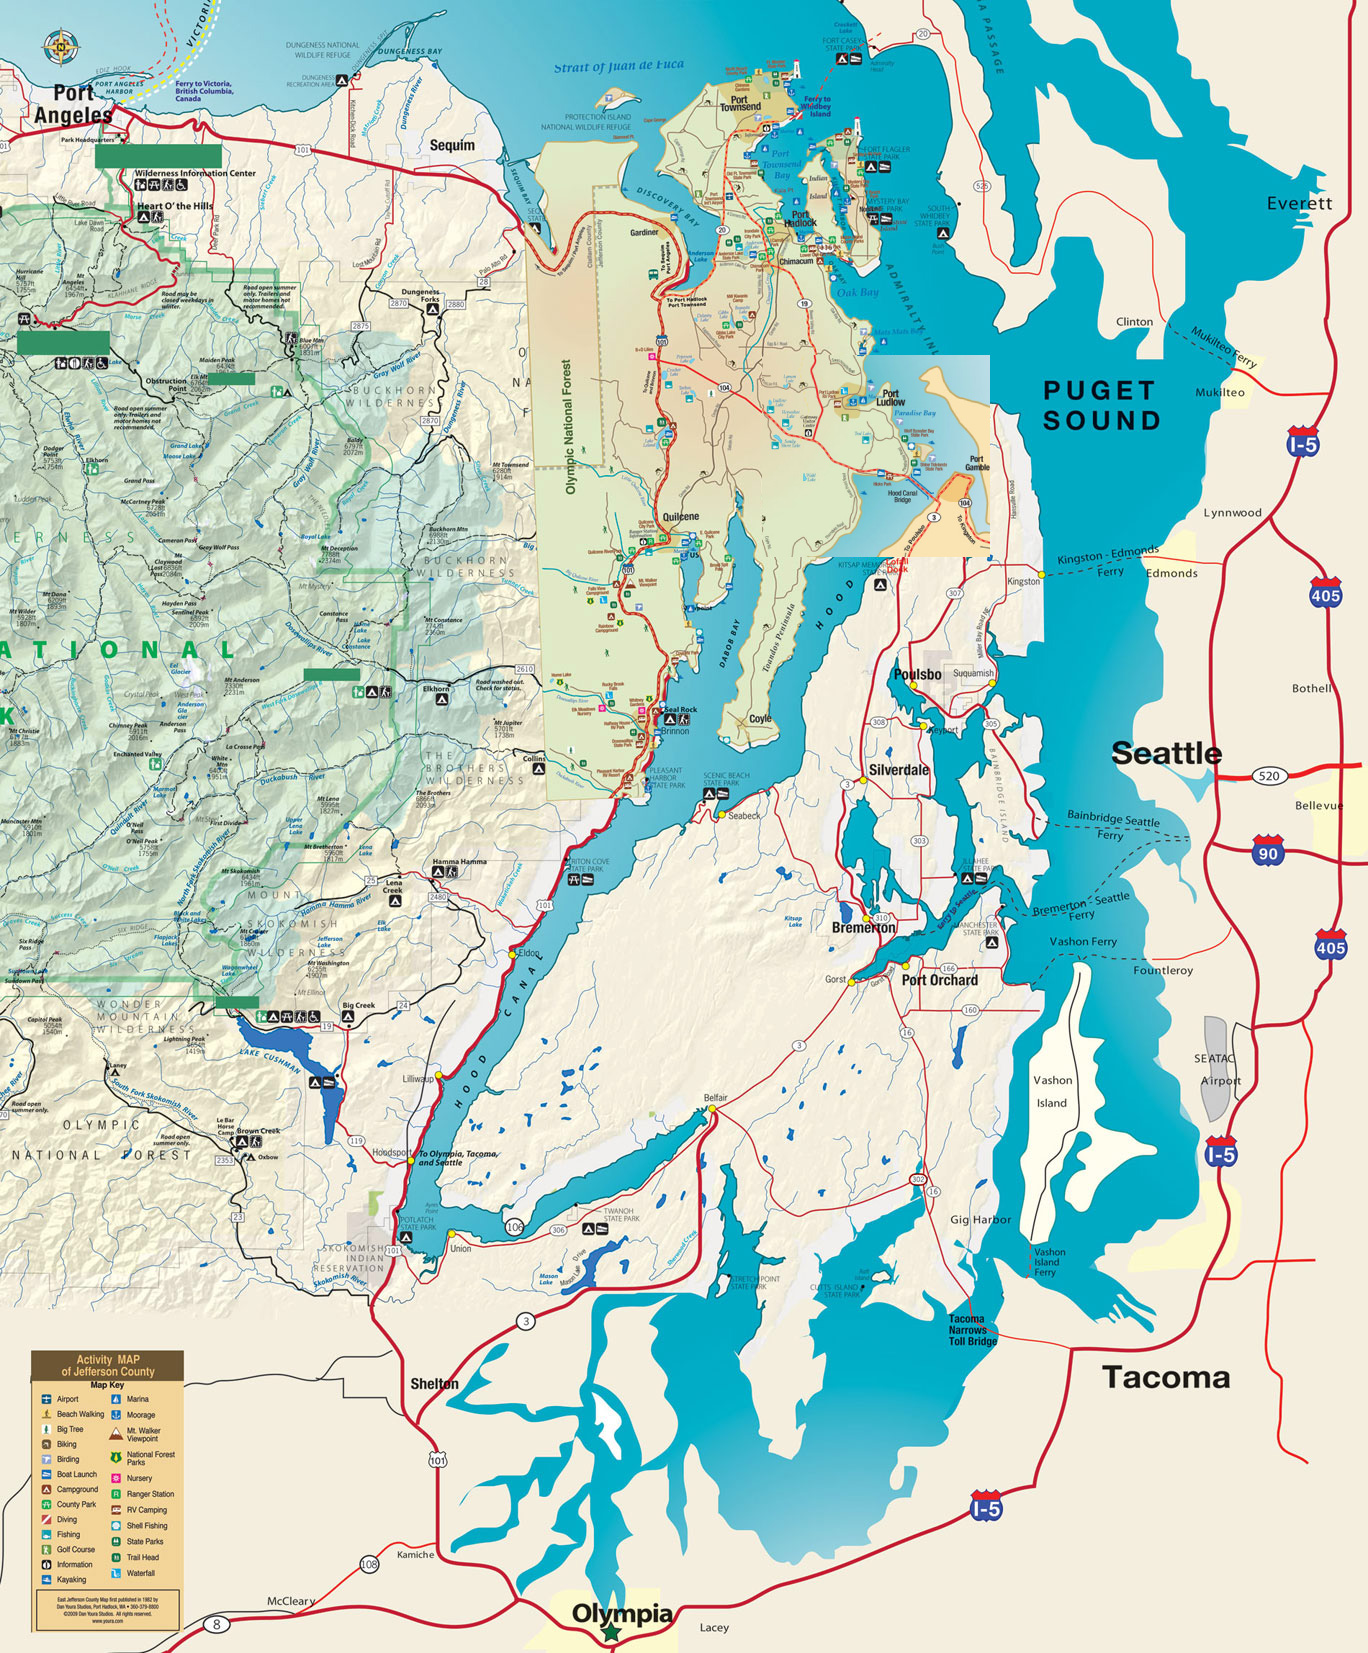 Map of Puget Sound, Washington.